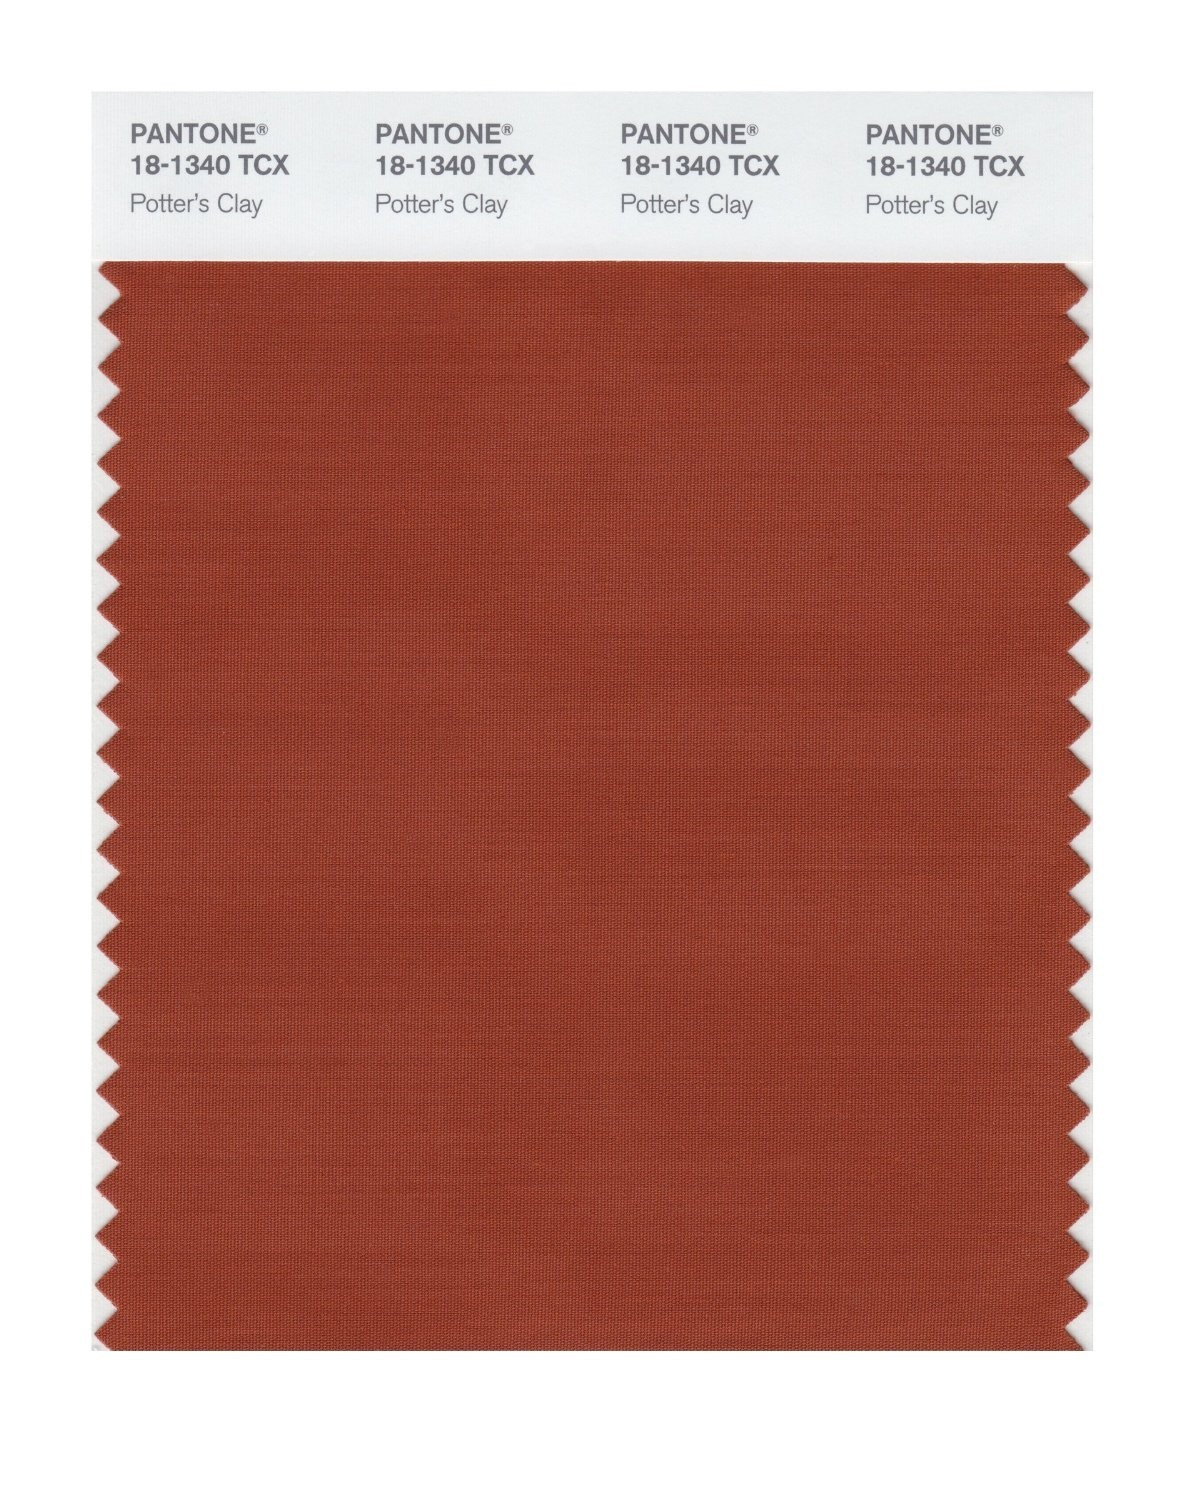 Pantone 18-1340 TCX Swatch Card Potter's Clay